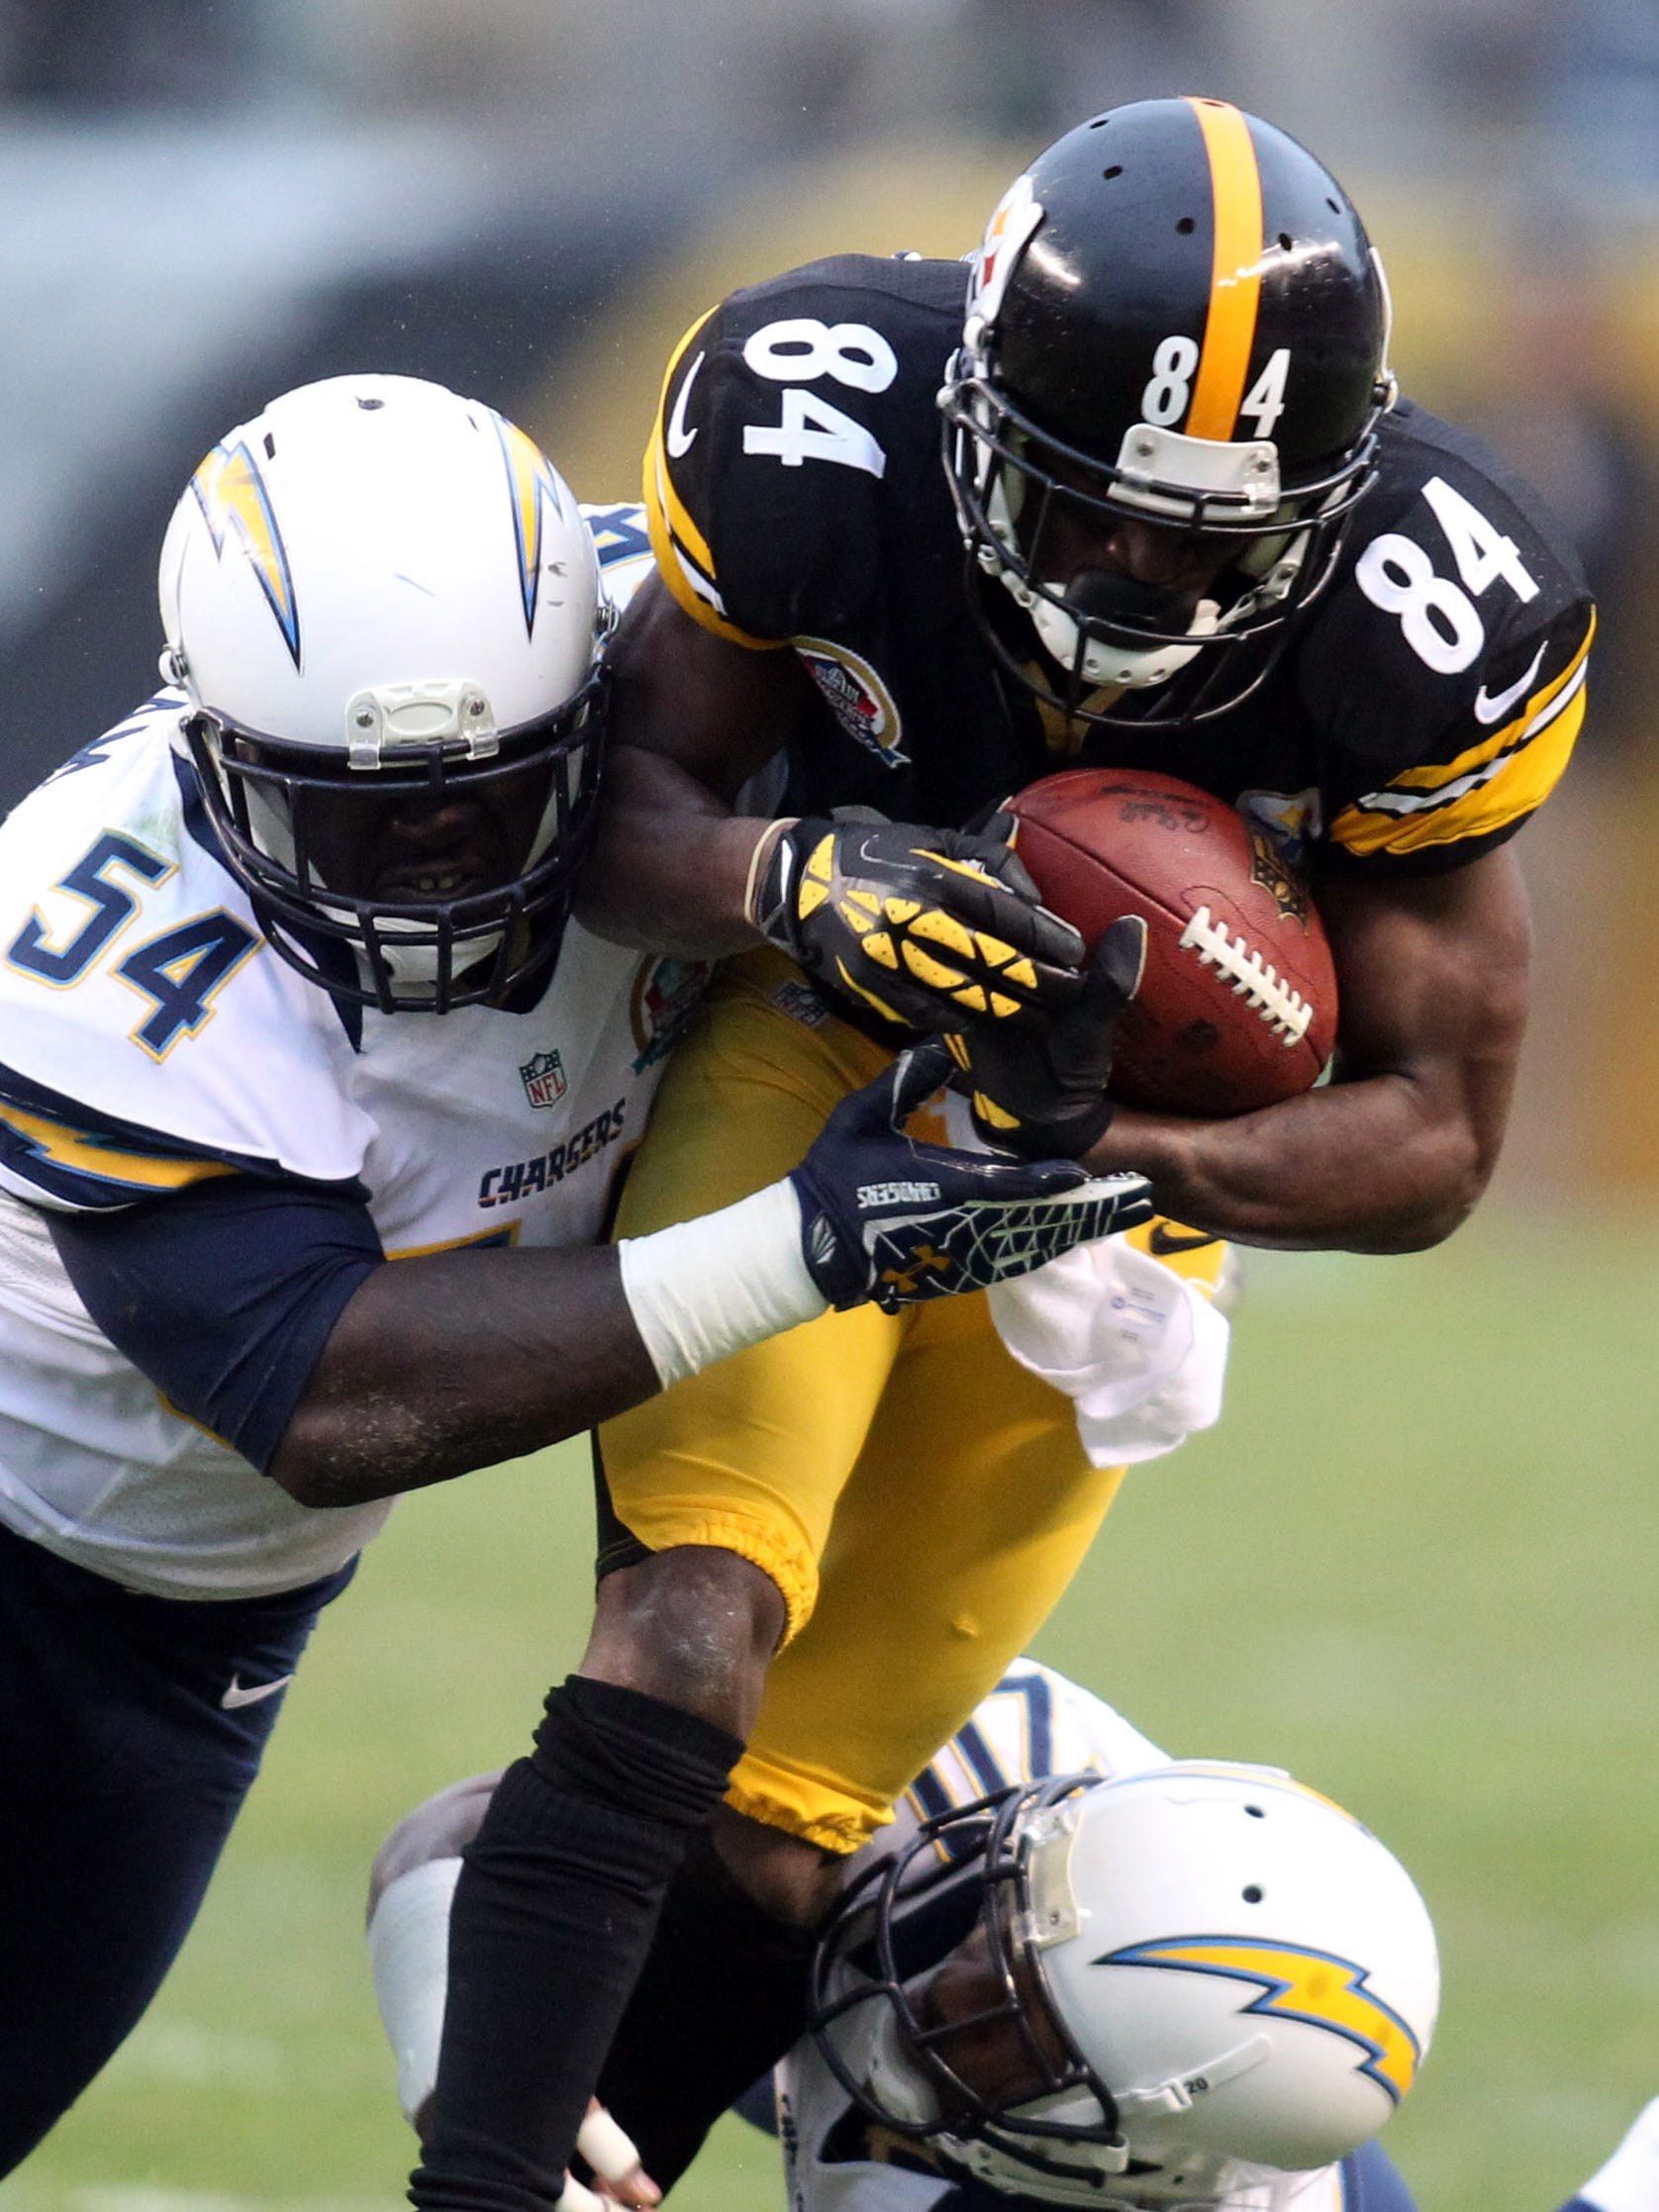 Steelers WR Antonio Brown (84) and Chargers pass rusher Melvin Ingram will meet again in December.